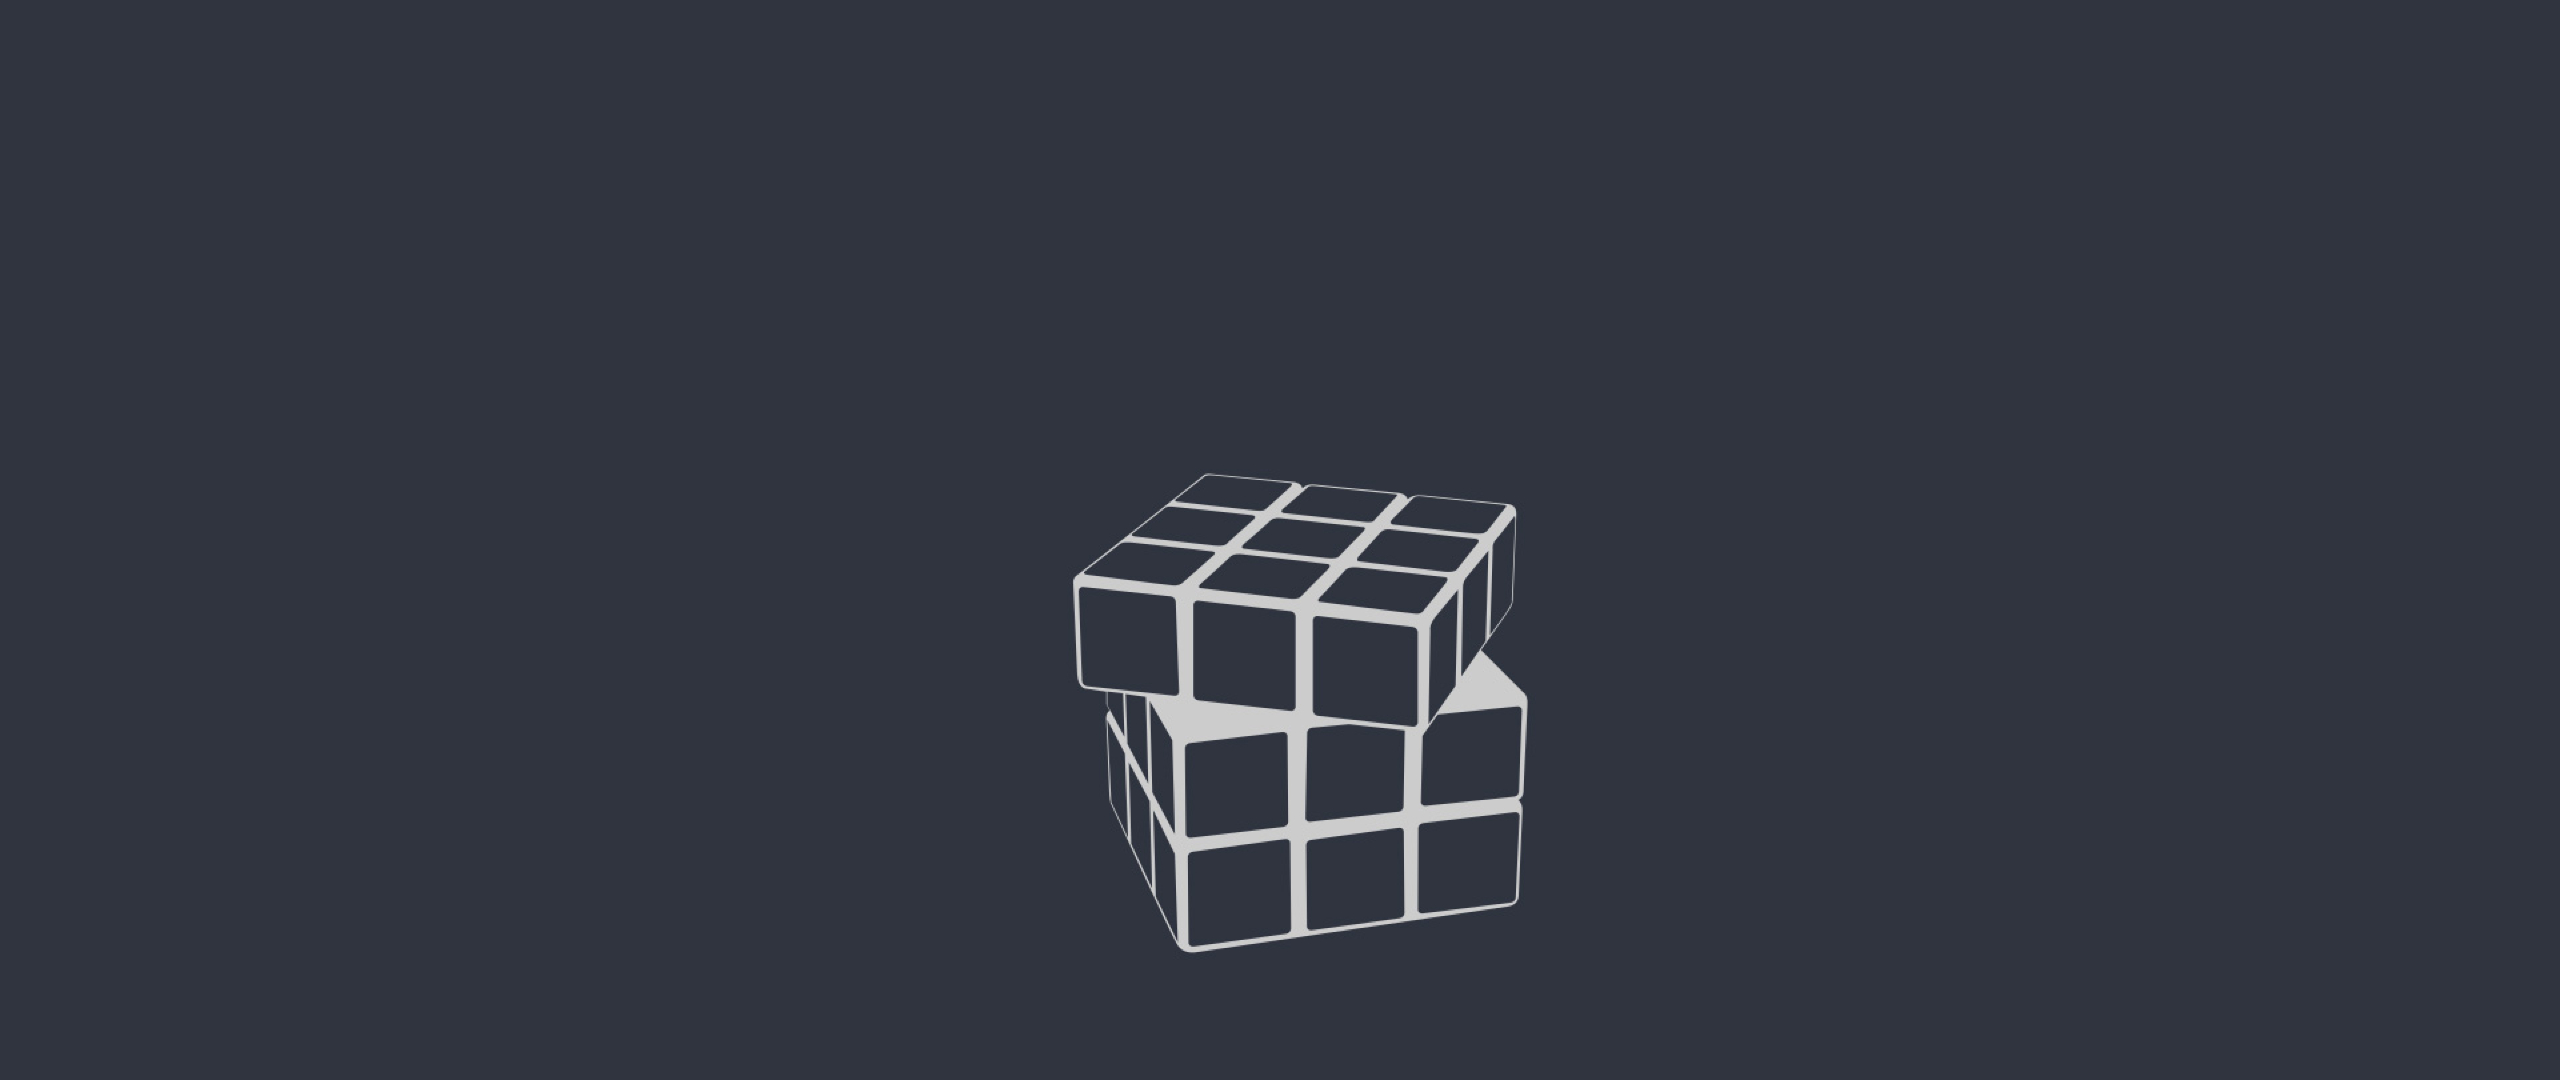 Download Pubg Minimalist Pophead 7680x4320 Resolution: Rubiks Cube Minimalism, Full HD Wallpaper